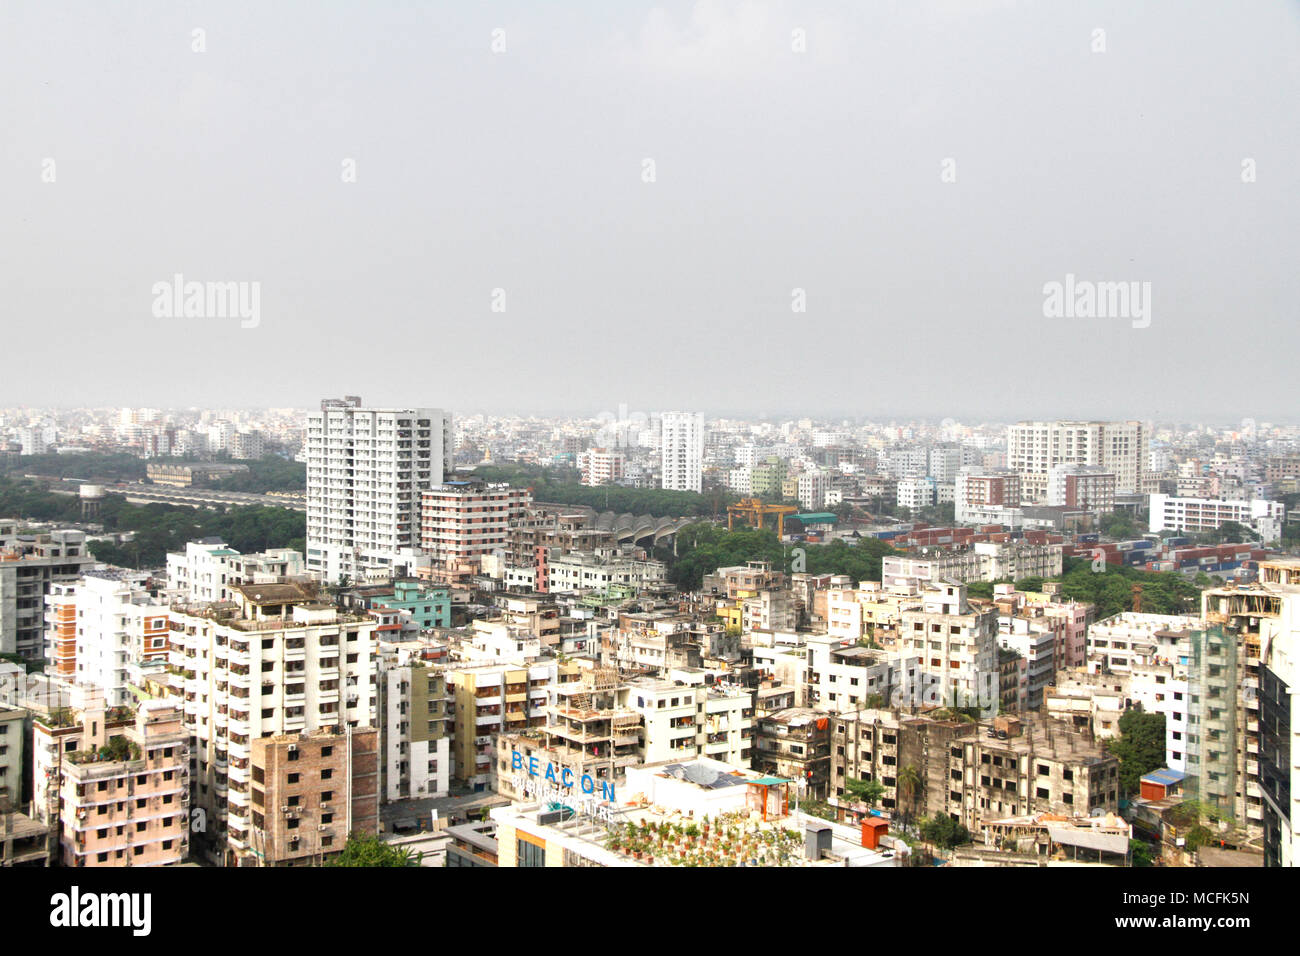 Dhaka, Bangladesh. A top views of southeast part of Dhaka city on April 5, 2018. Dhaka is the capital city of Bangladesh, is located in central Bangladesh along the Buriganga River.Dhaka is one of the most populated city and it has been ranked as the ninth most polluted city in the world.In 2016, the population is 18.237 million in the Greater Dhaka Area, while the city itself has a population estimated at about 8.5 million according to data. © Rehman Asad/Alamy Stock Photo - Stock Image